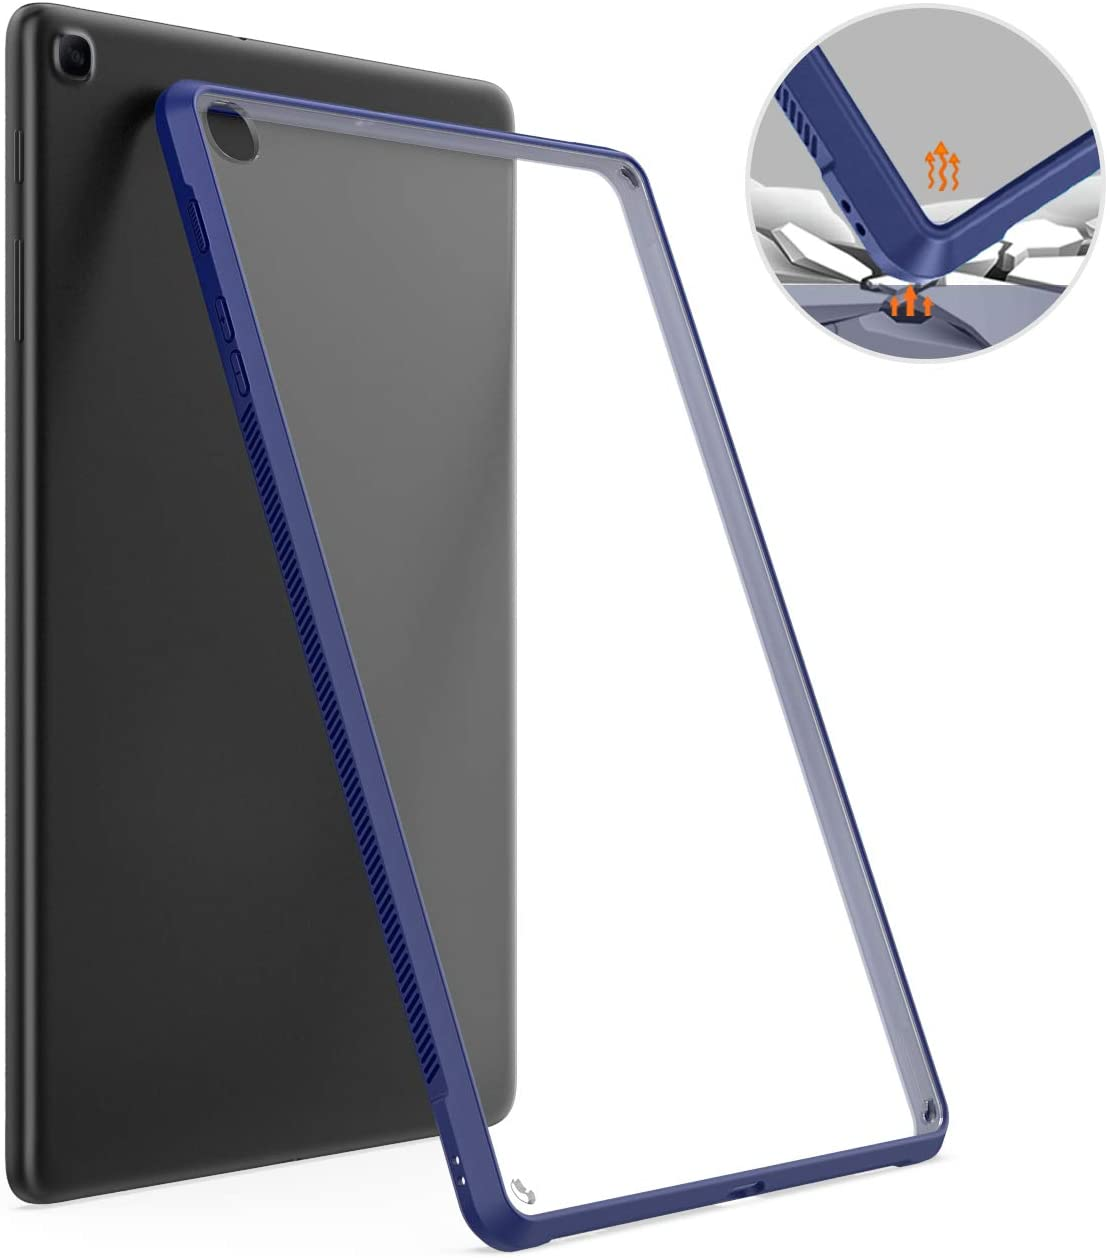 TiMOVO Case for Samsung Galaxy Tab A 10.1 2019(T510/T515), Slim Lightweight Shockproof Flexible Transparent TPU Skin Bumper Edge Protection Back Cover Shell for Galaxy Tab A 10.1 2019 Tablet - Indigo